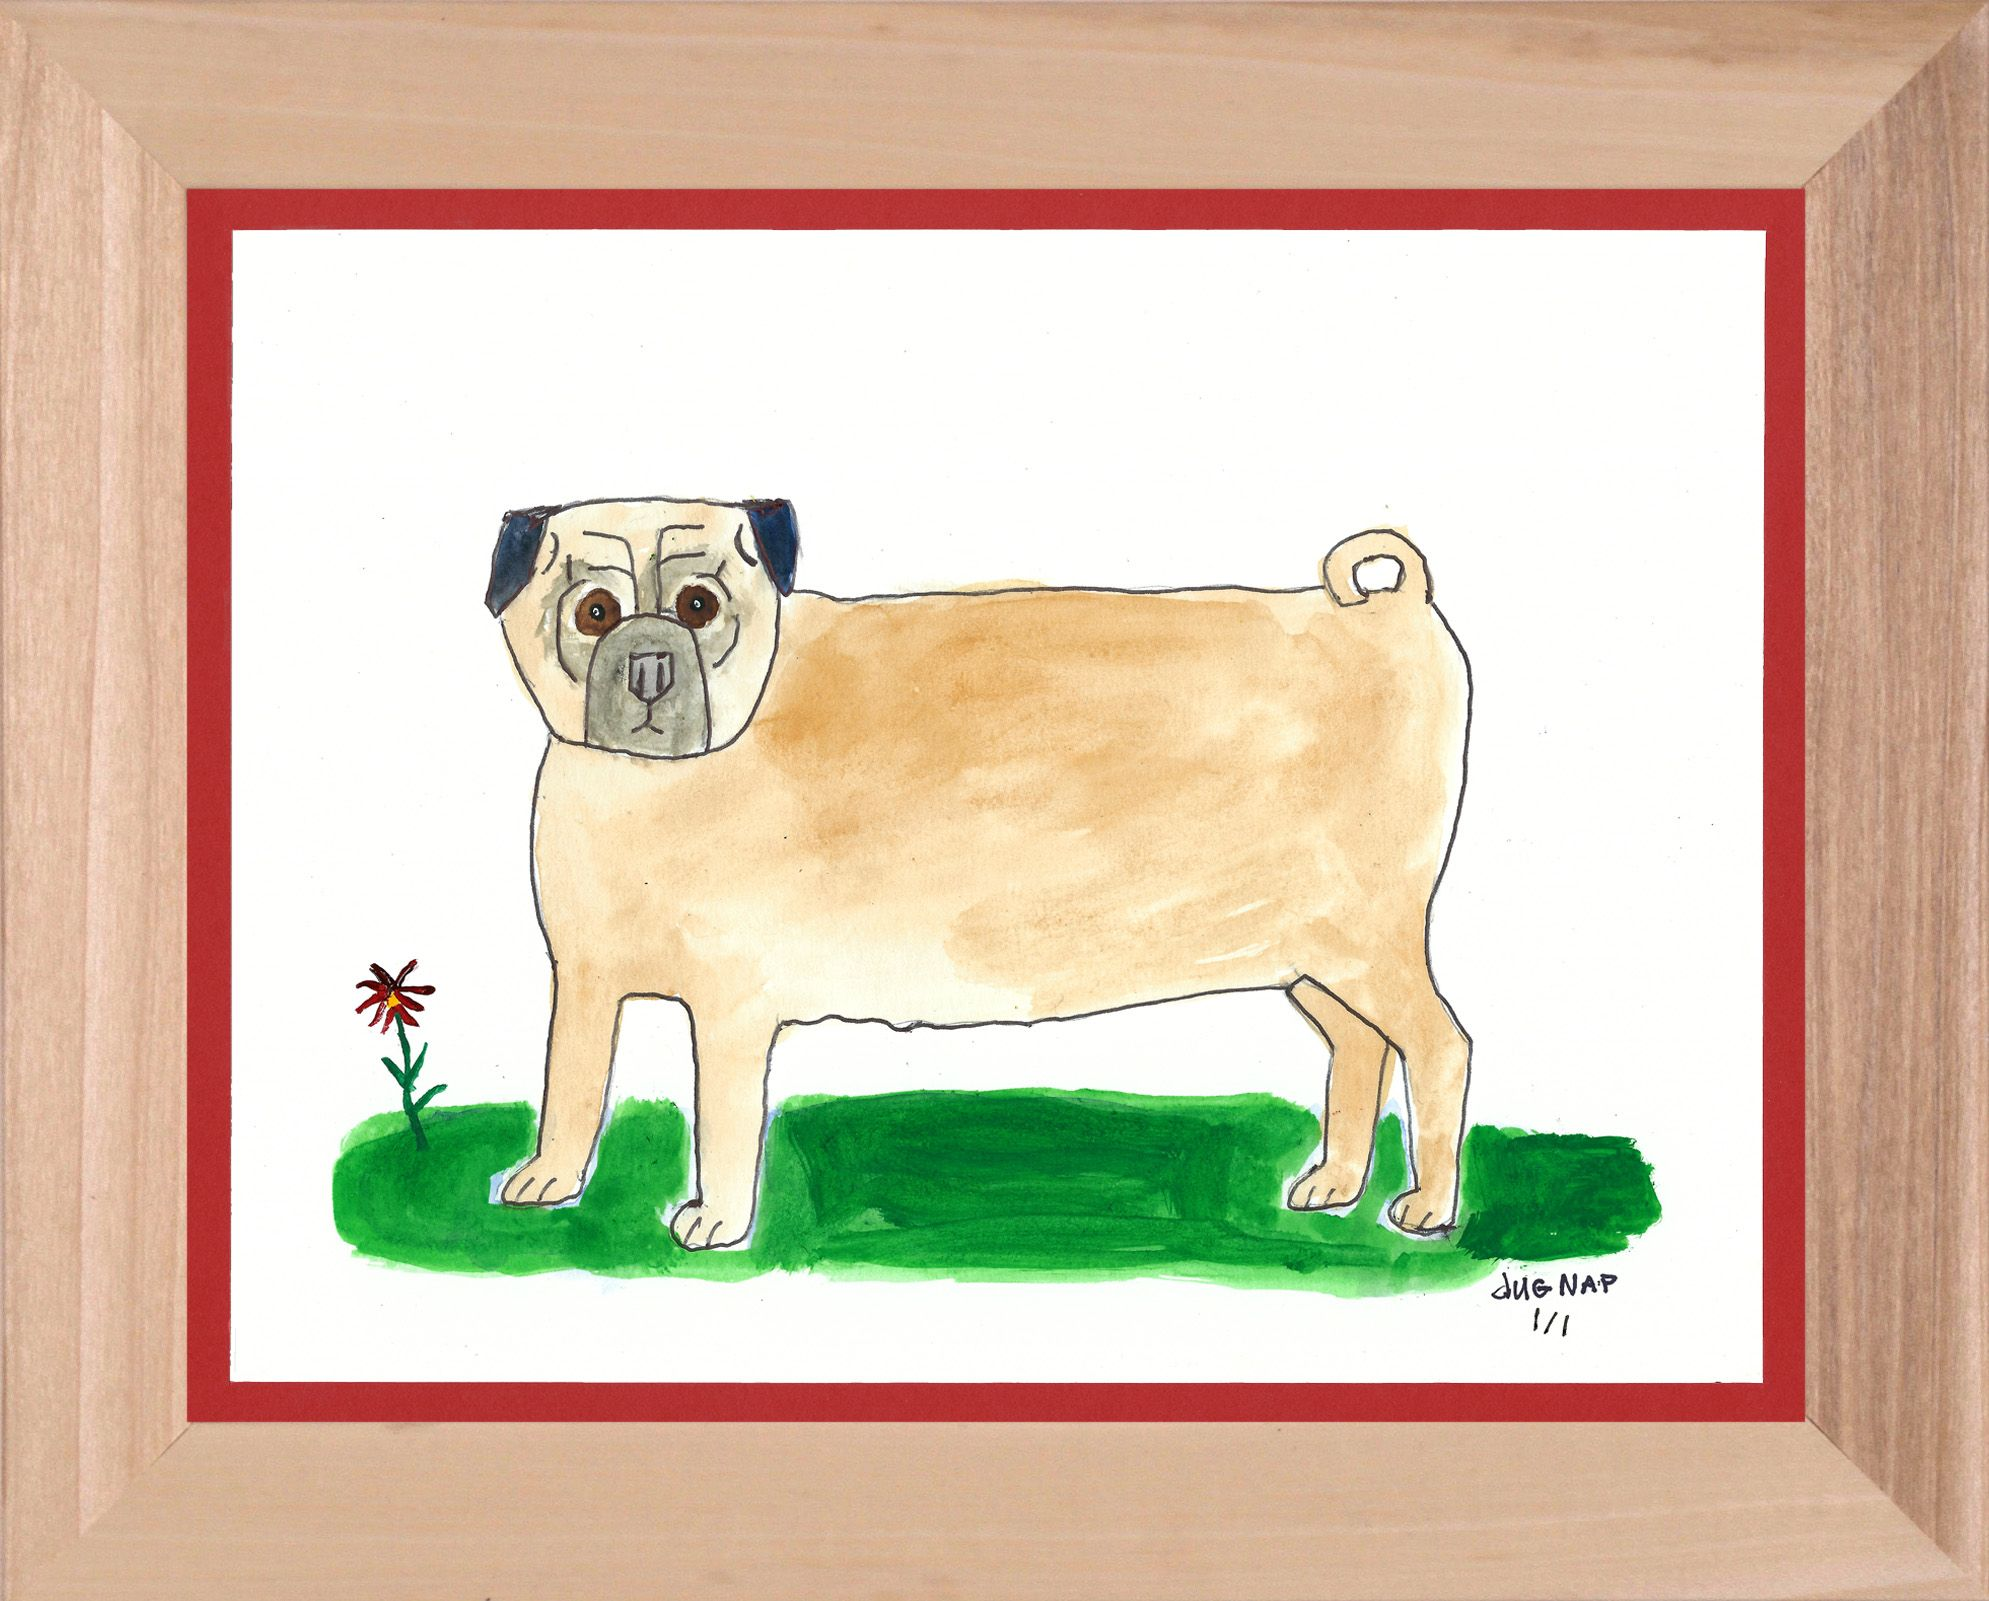 Pug with Flower  - 8.5x11 Watercolor and Pen on Paper - dug Nap Art